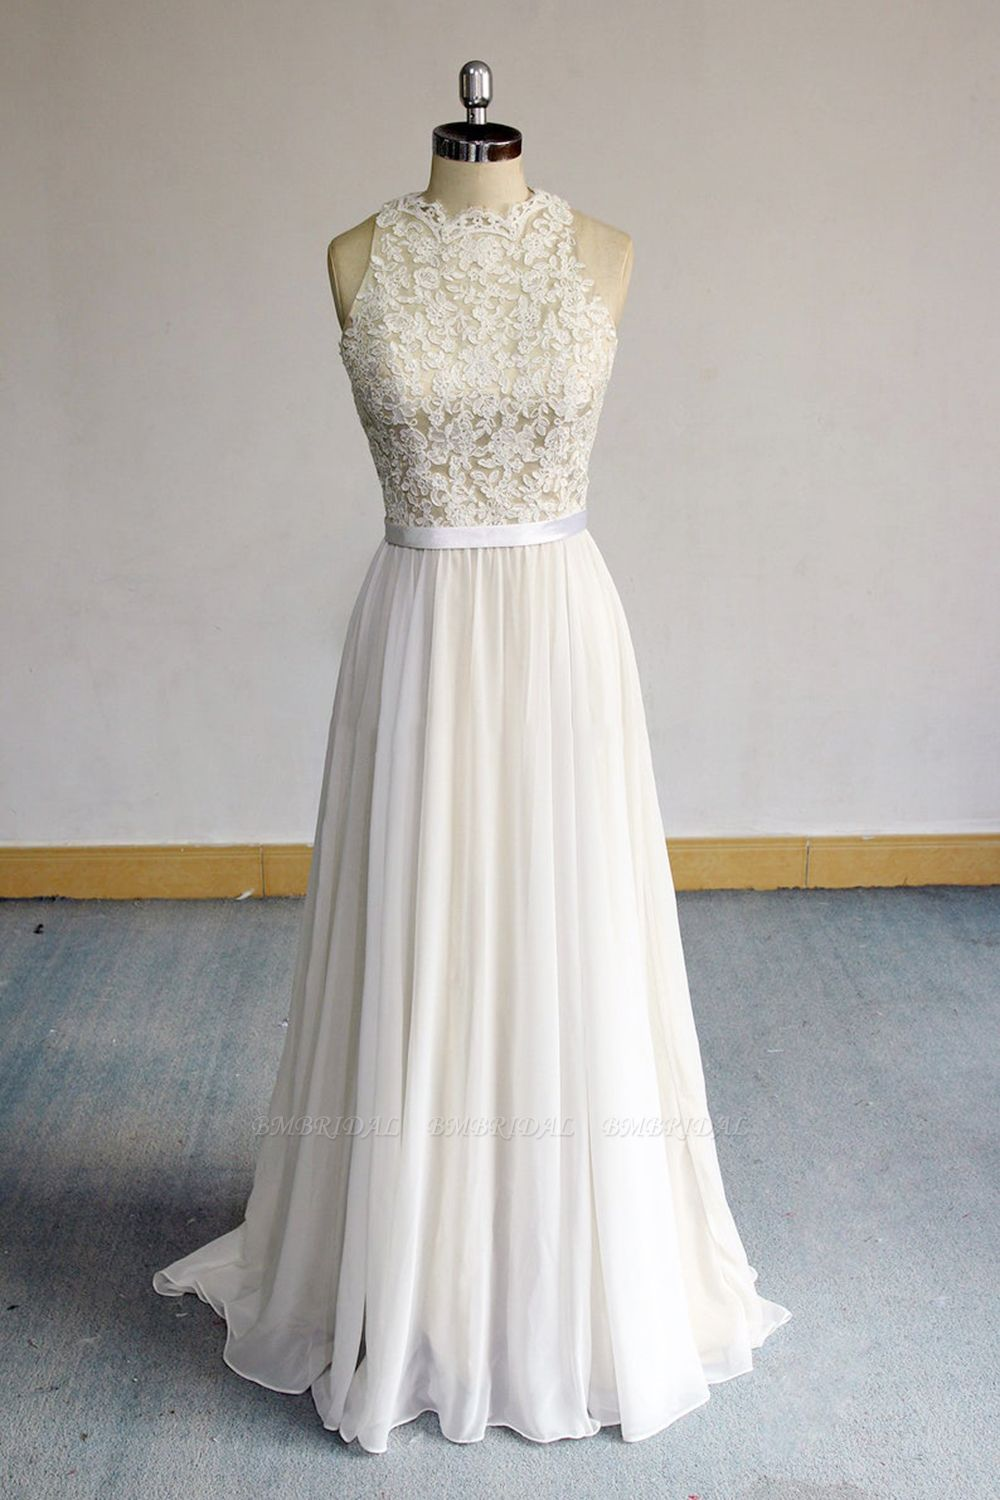 BMbridal Glamorous White Appliques Chiffon Wedding Dress Sleeveless Ruffles A-line Bridal Gowns On Sale